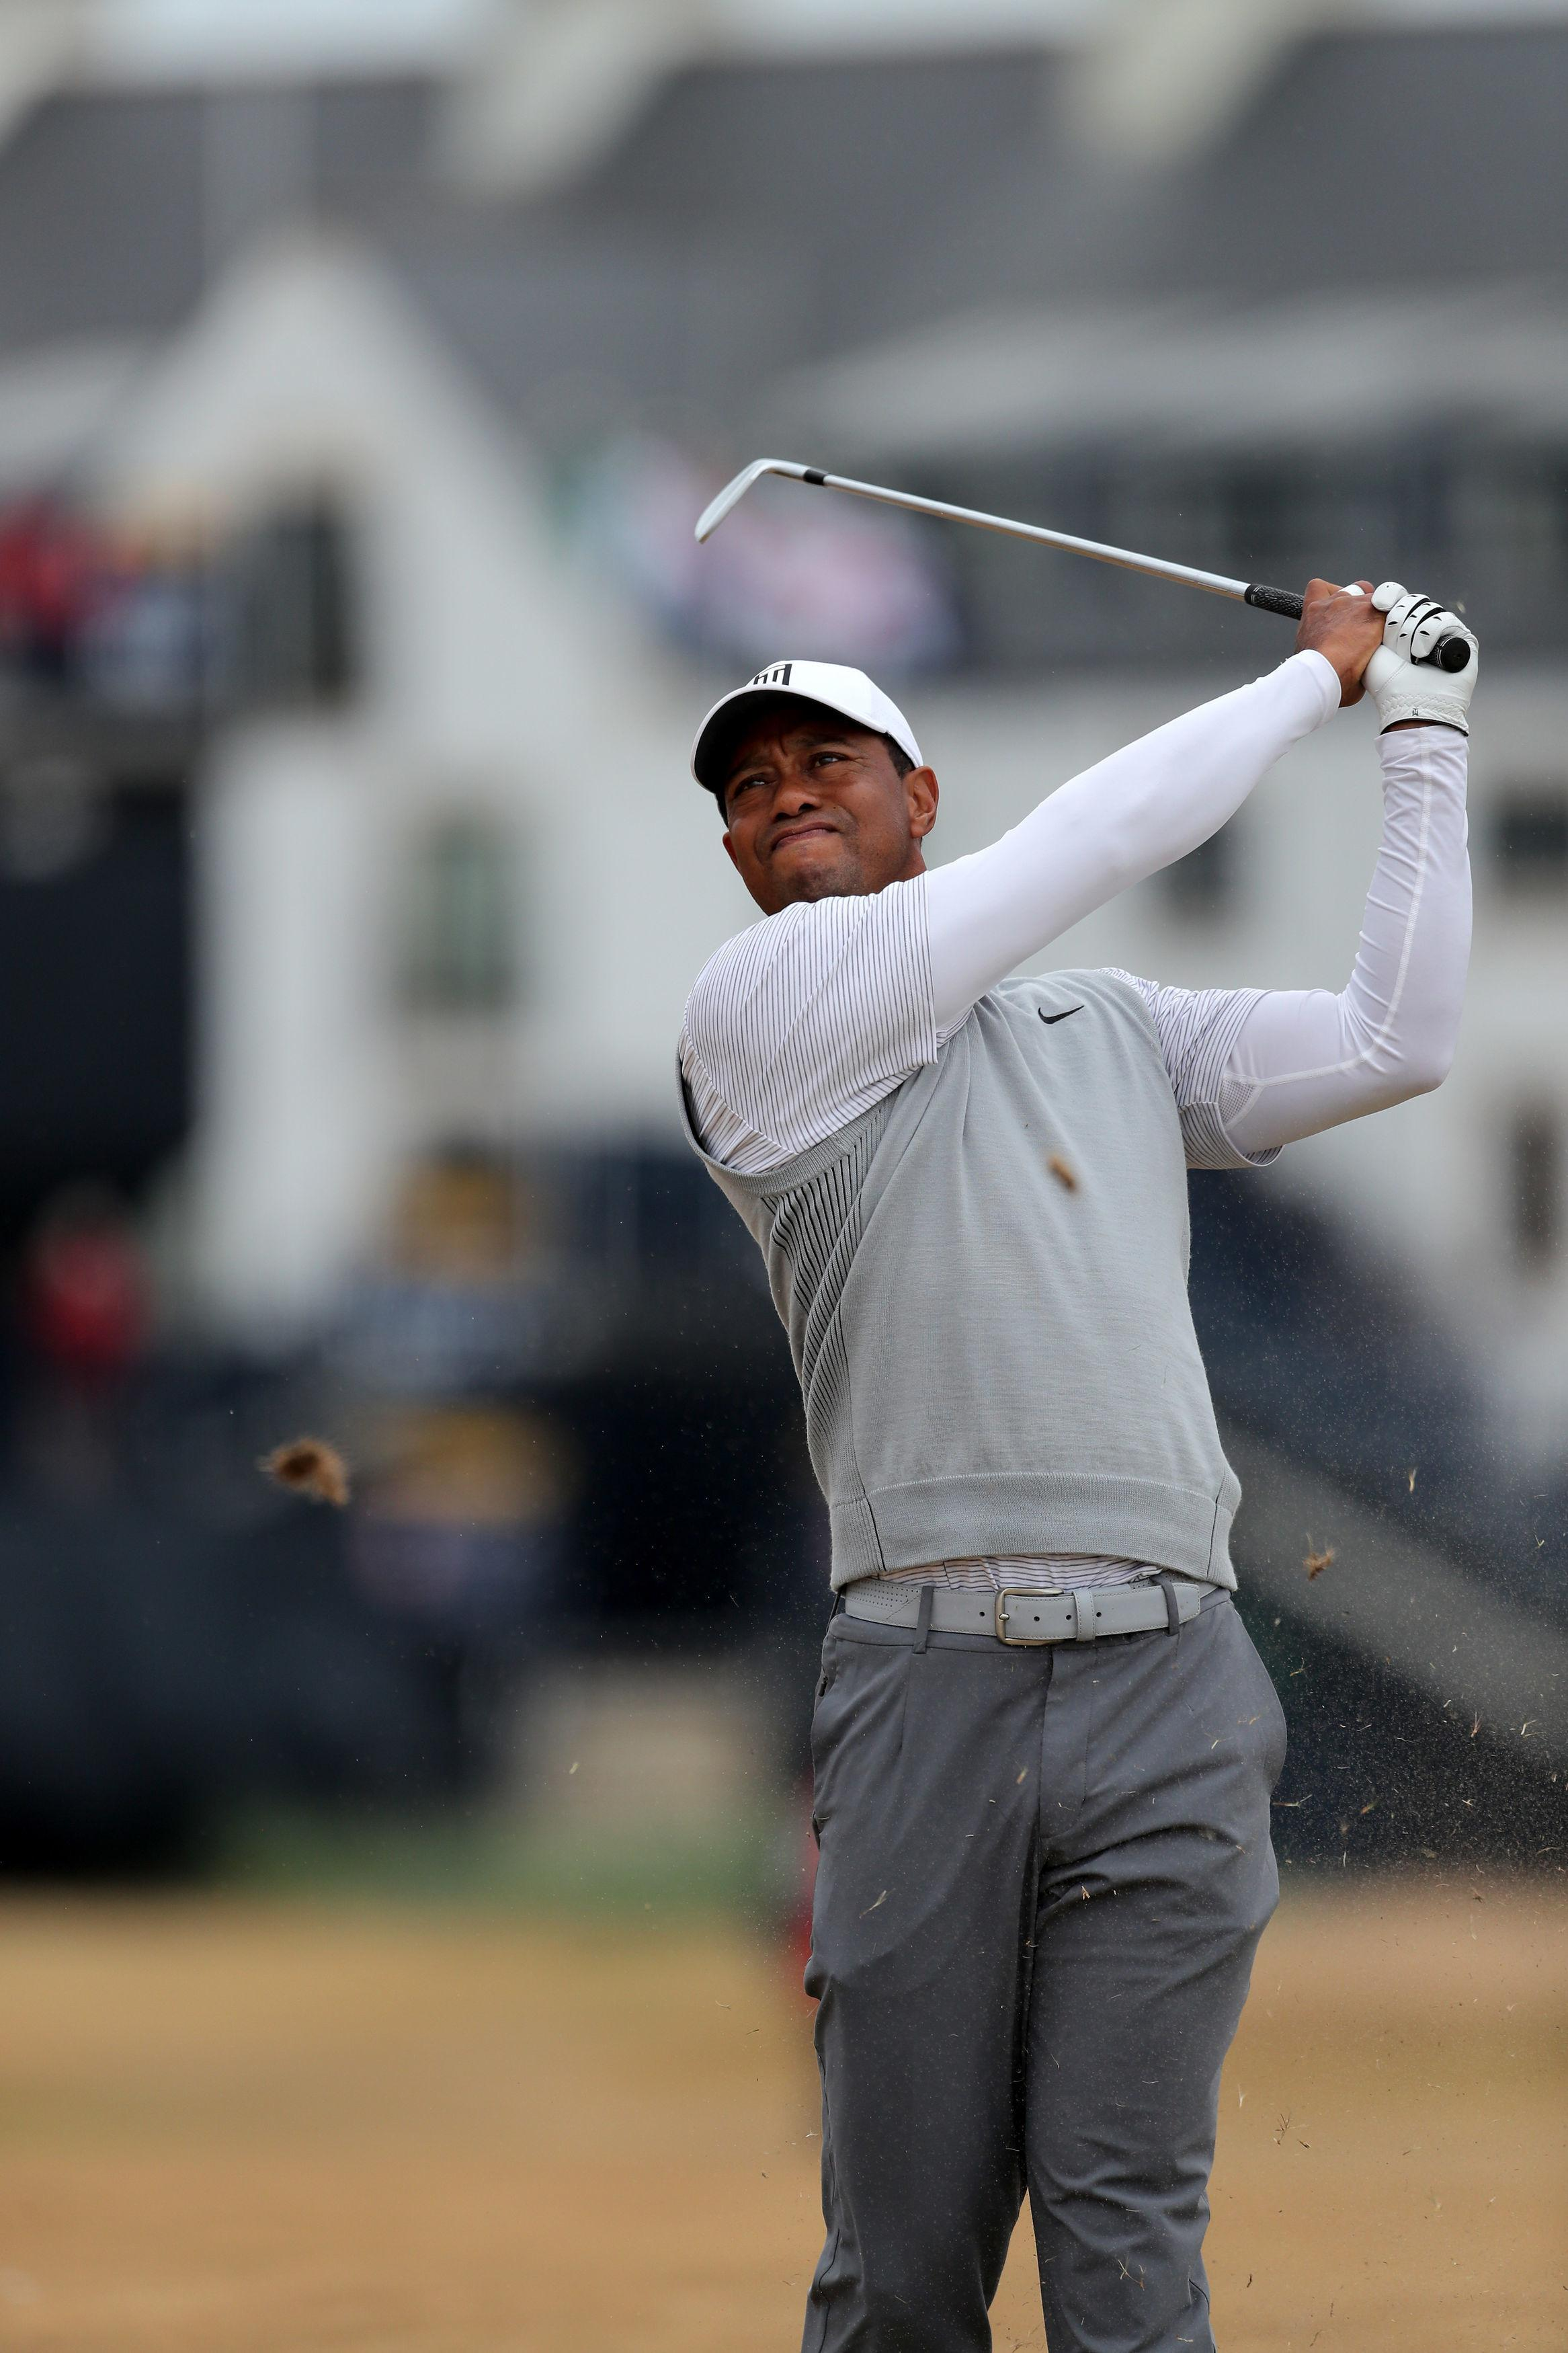 Woods, 42, has not won a Major since the 2008 US Open